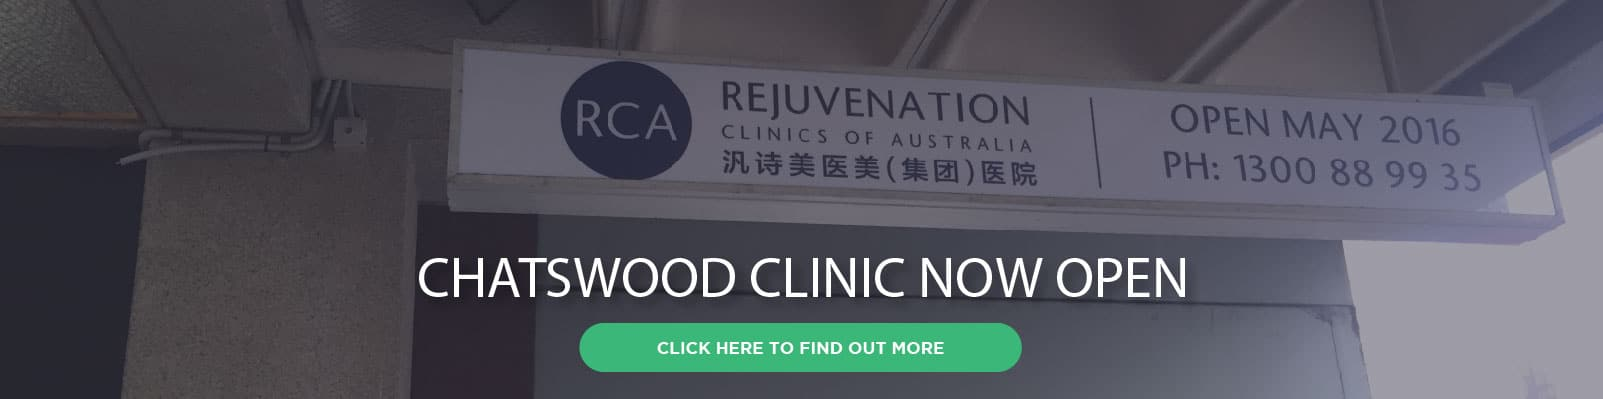 Chatswood laser clinic now open